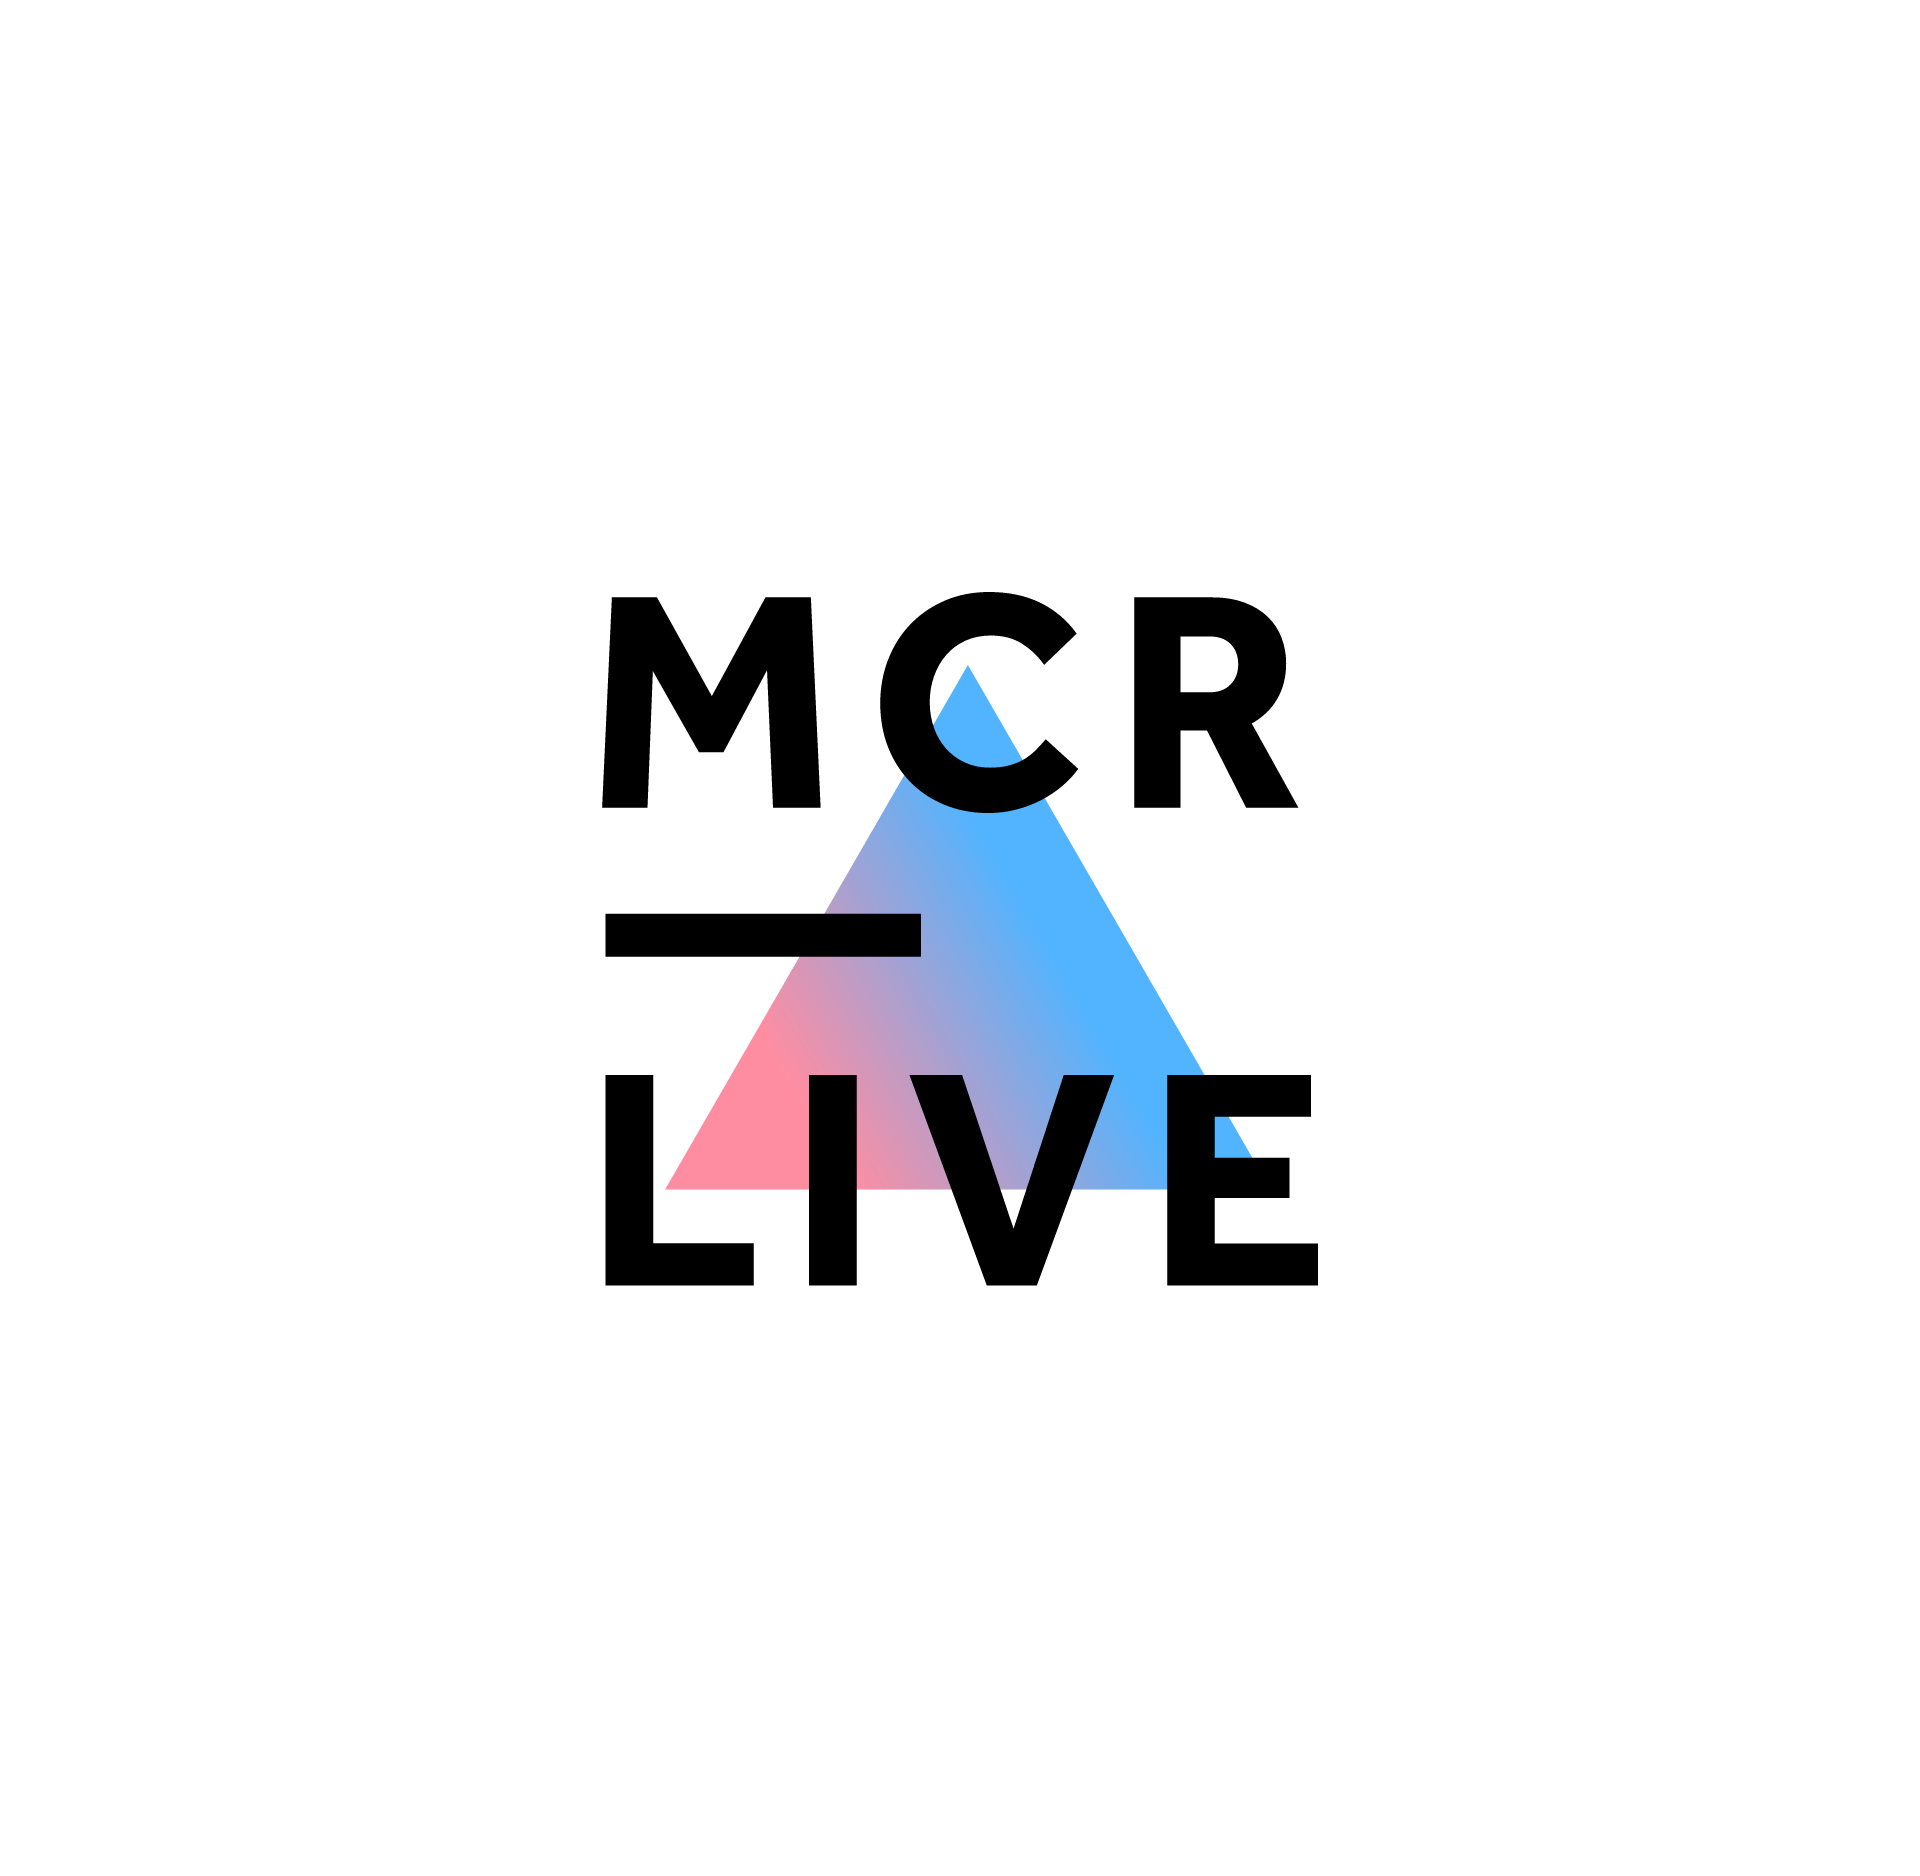 MCR Live logo on white, the text is all caps in an understated bold sans serif, stacked MCR a large underscore, and LIVE. All over the top of a triangle with a vivid gradient of pink to blue.